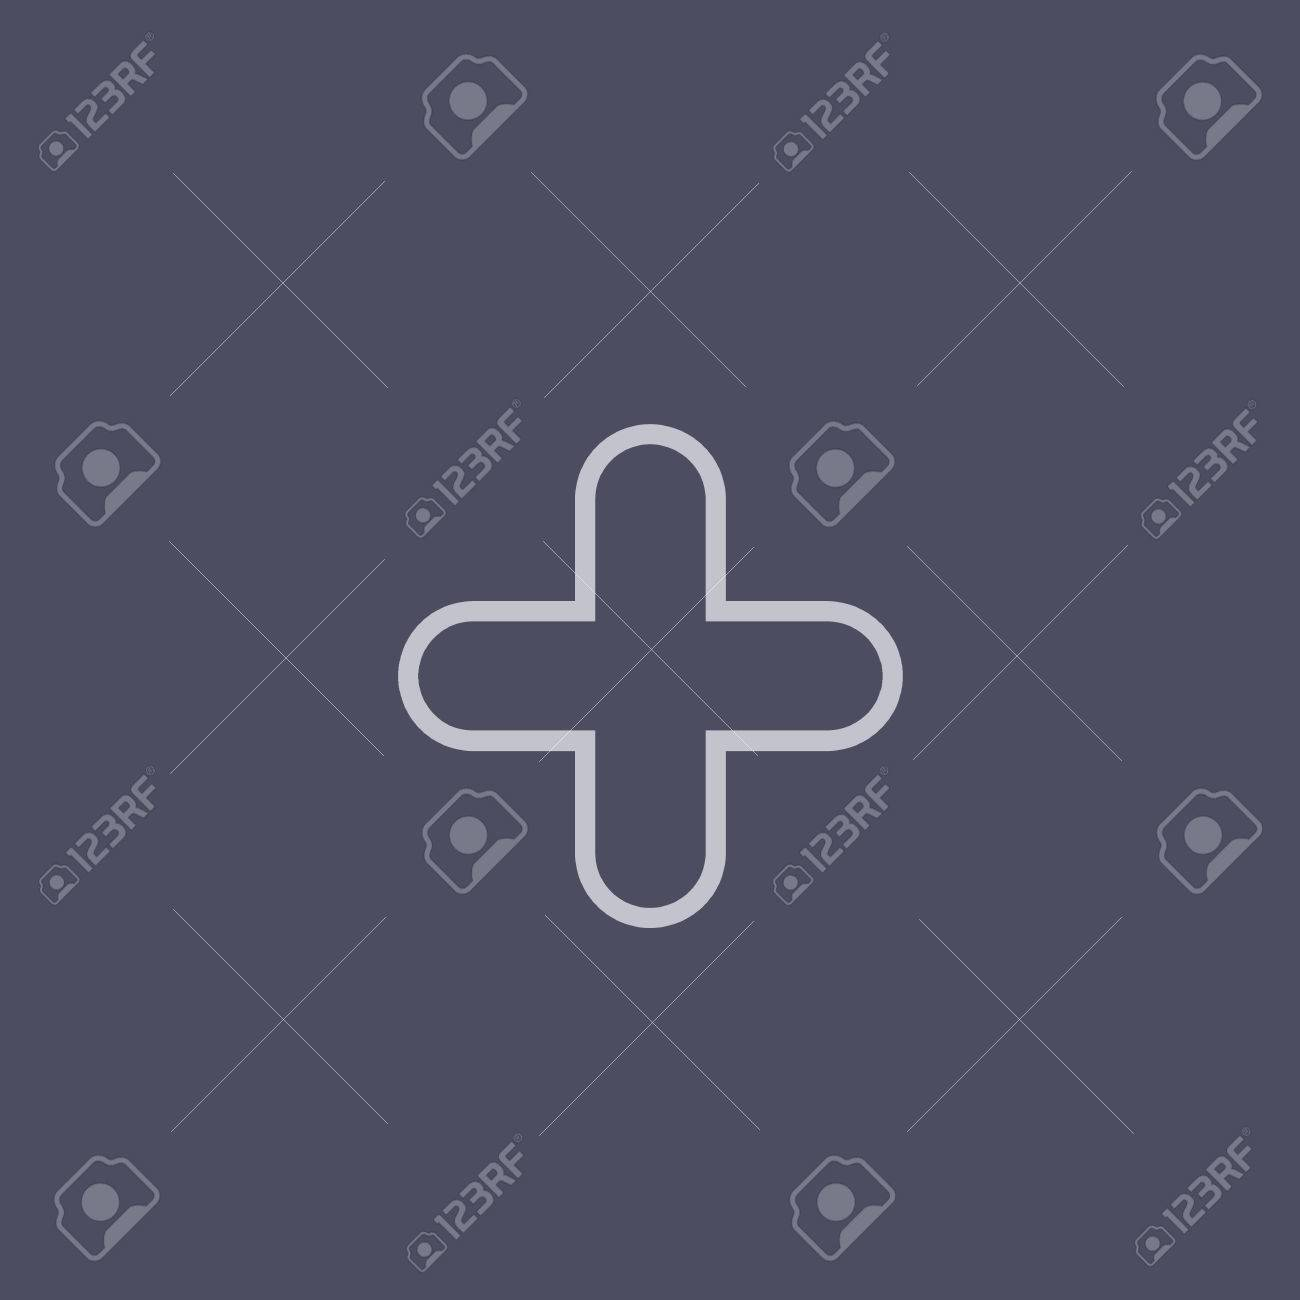 Plus Sign Icon Positive Symbol Zoom In Classic Flat Icon